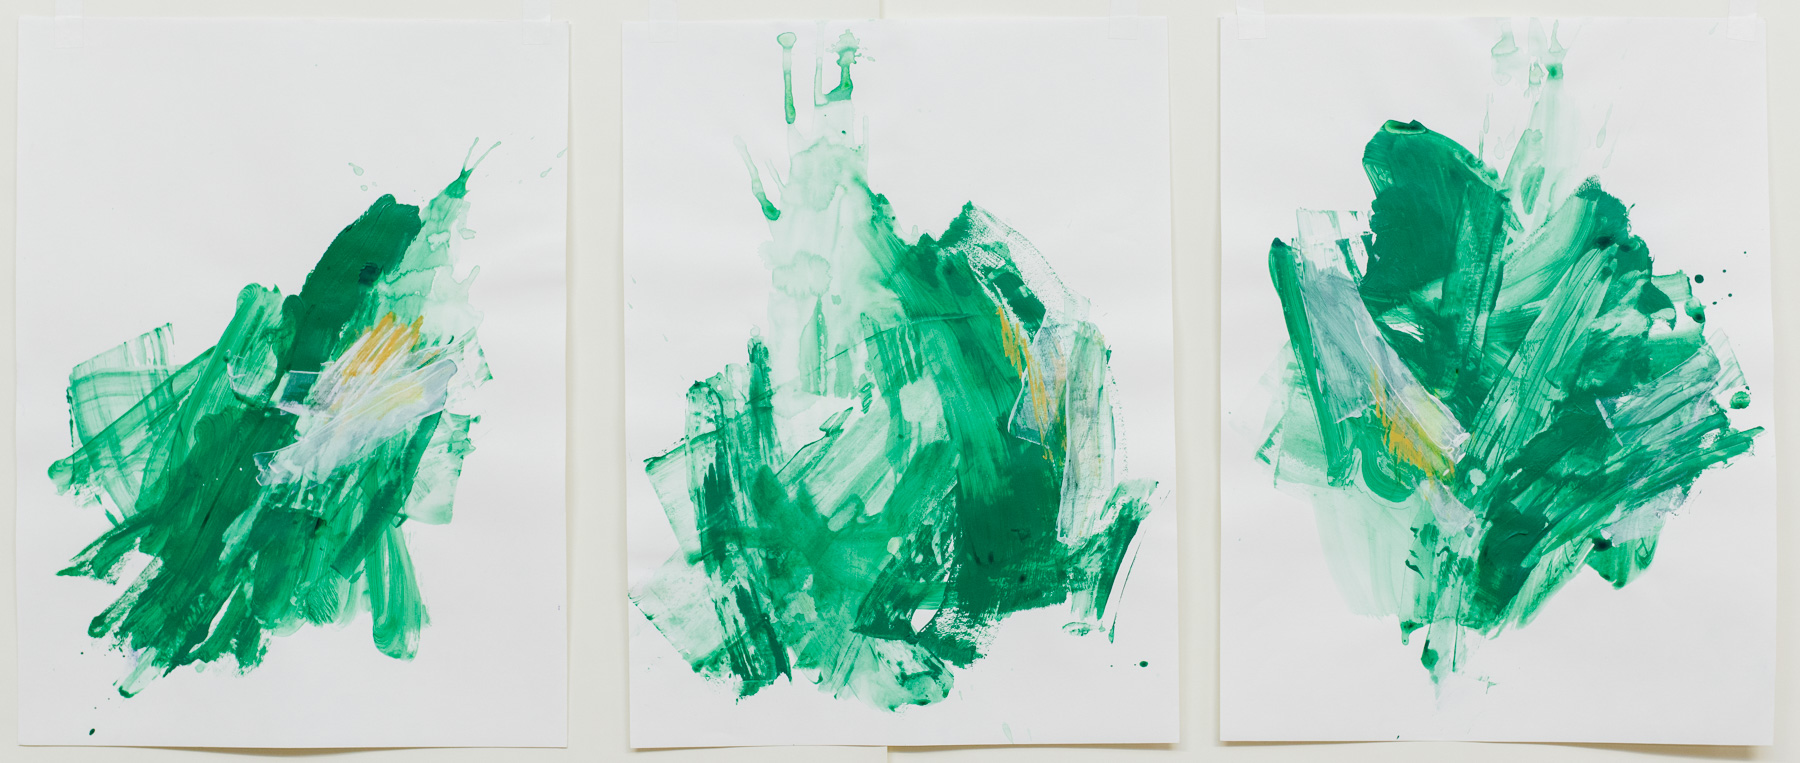 """Right Off the Edge #1-2 #4 , 18""""x24"""" each, acrylic on paper, 2018, available"""